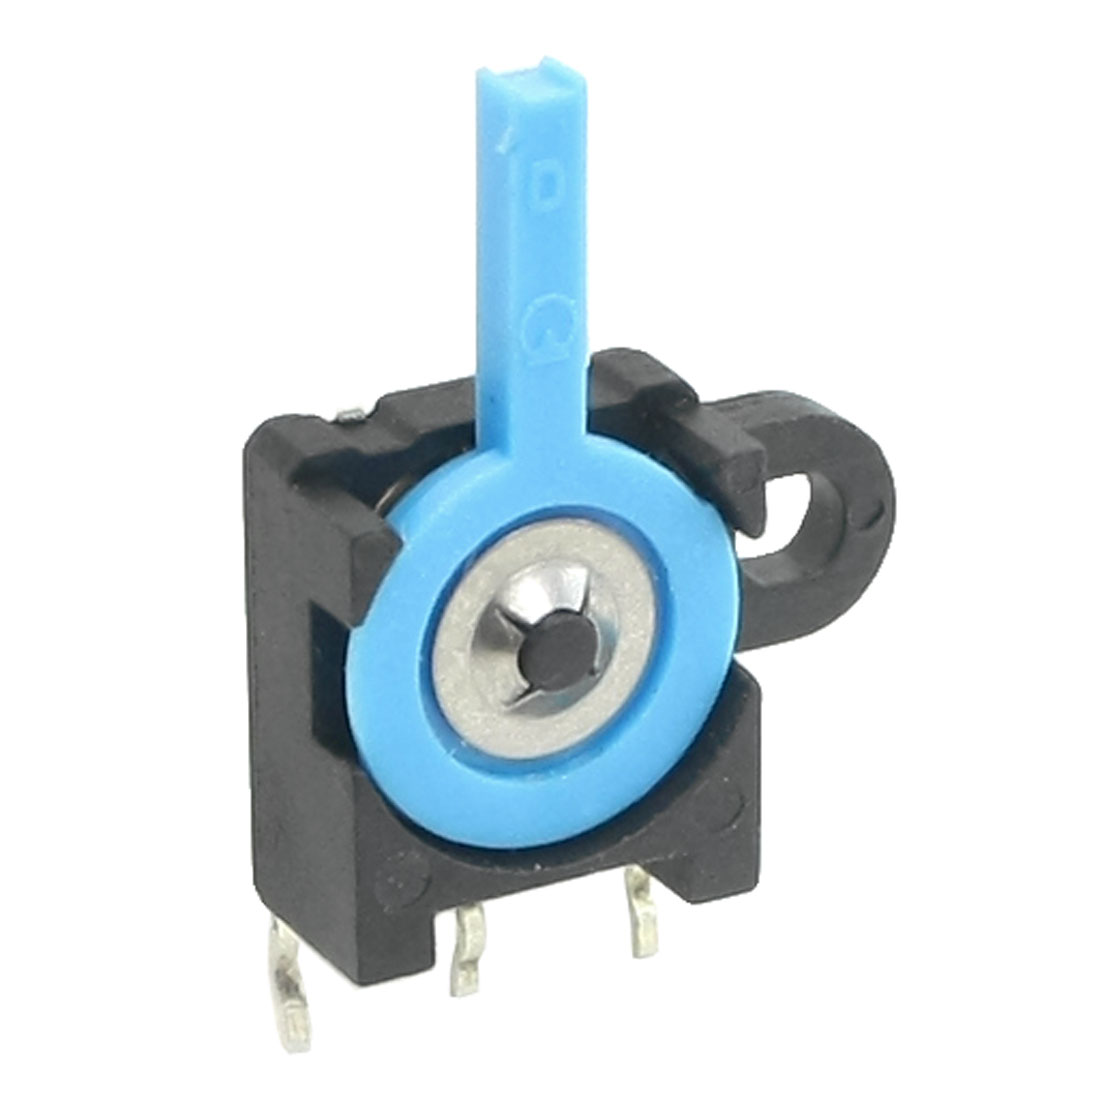 SPDT 3 Terminals 3 Position Miniature Reset Switch DC30V 0.5A